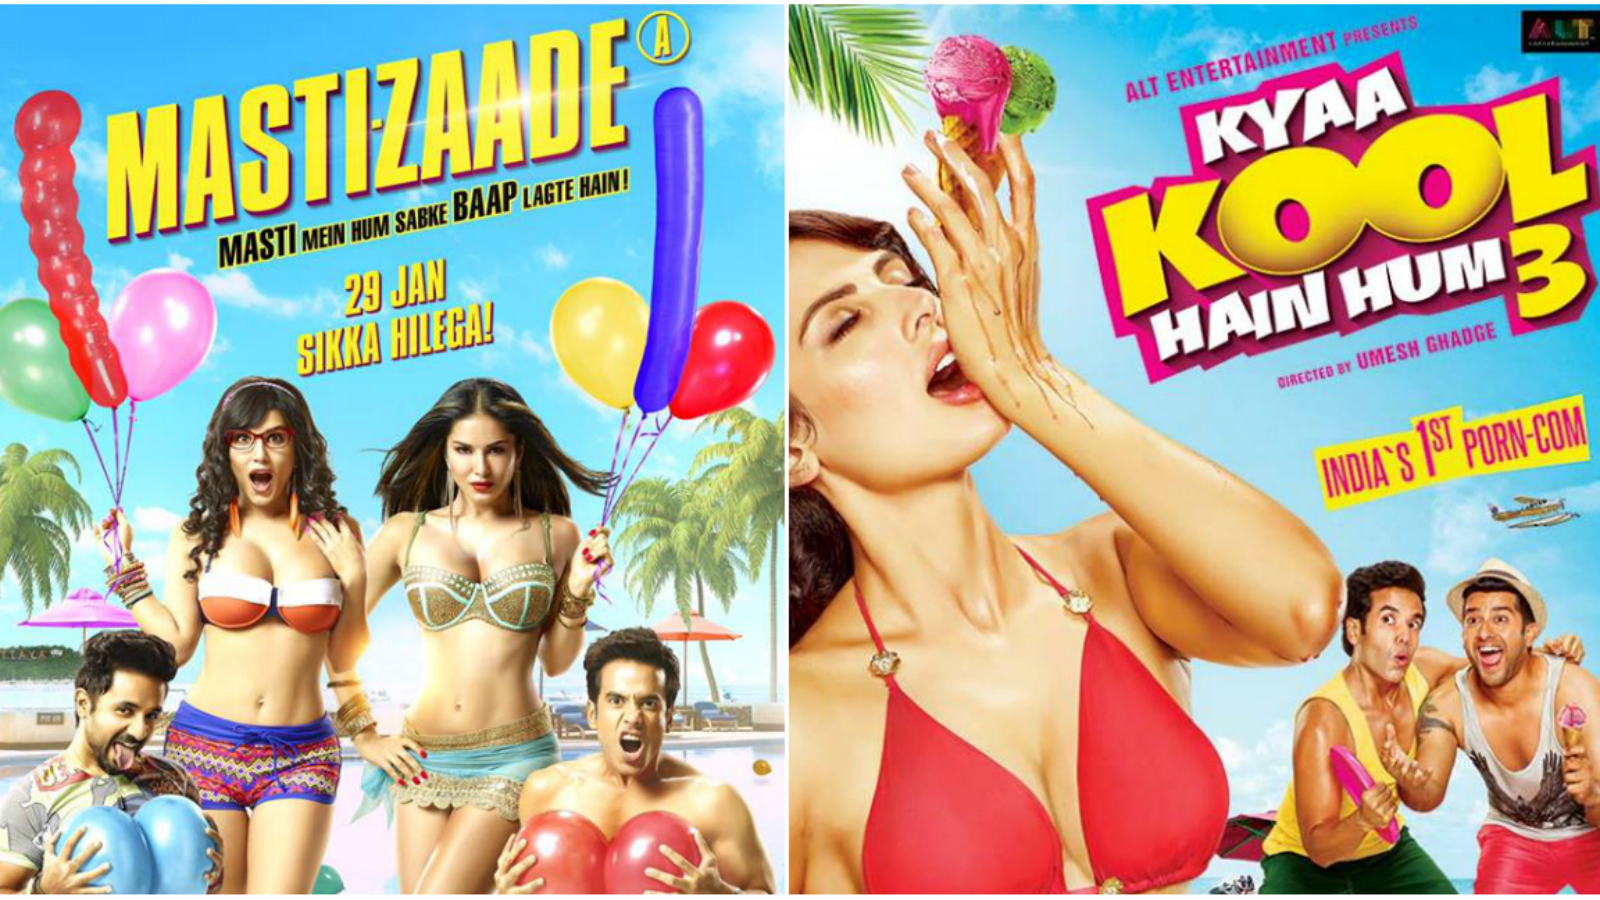 Film posters of two upcoming Bollywood adult films.